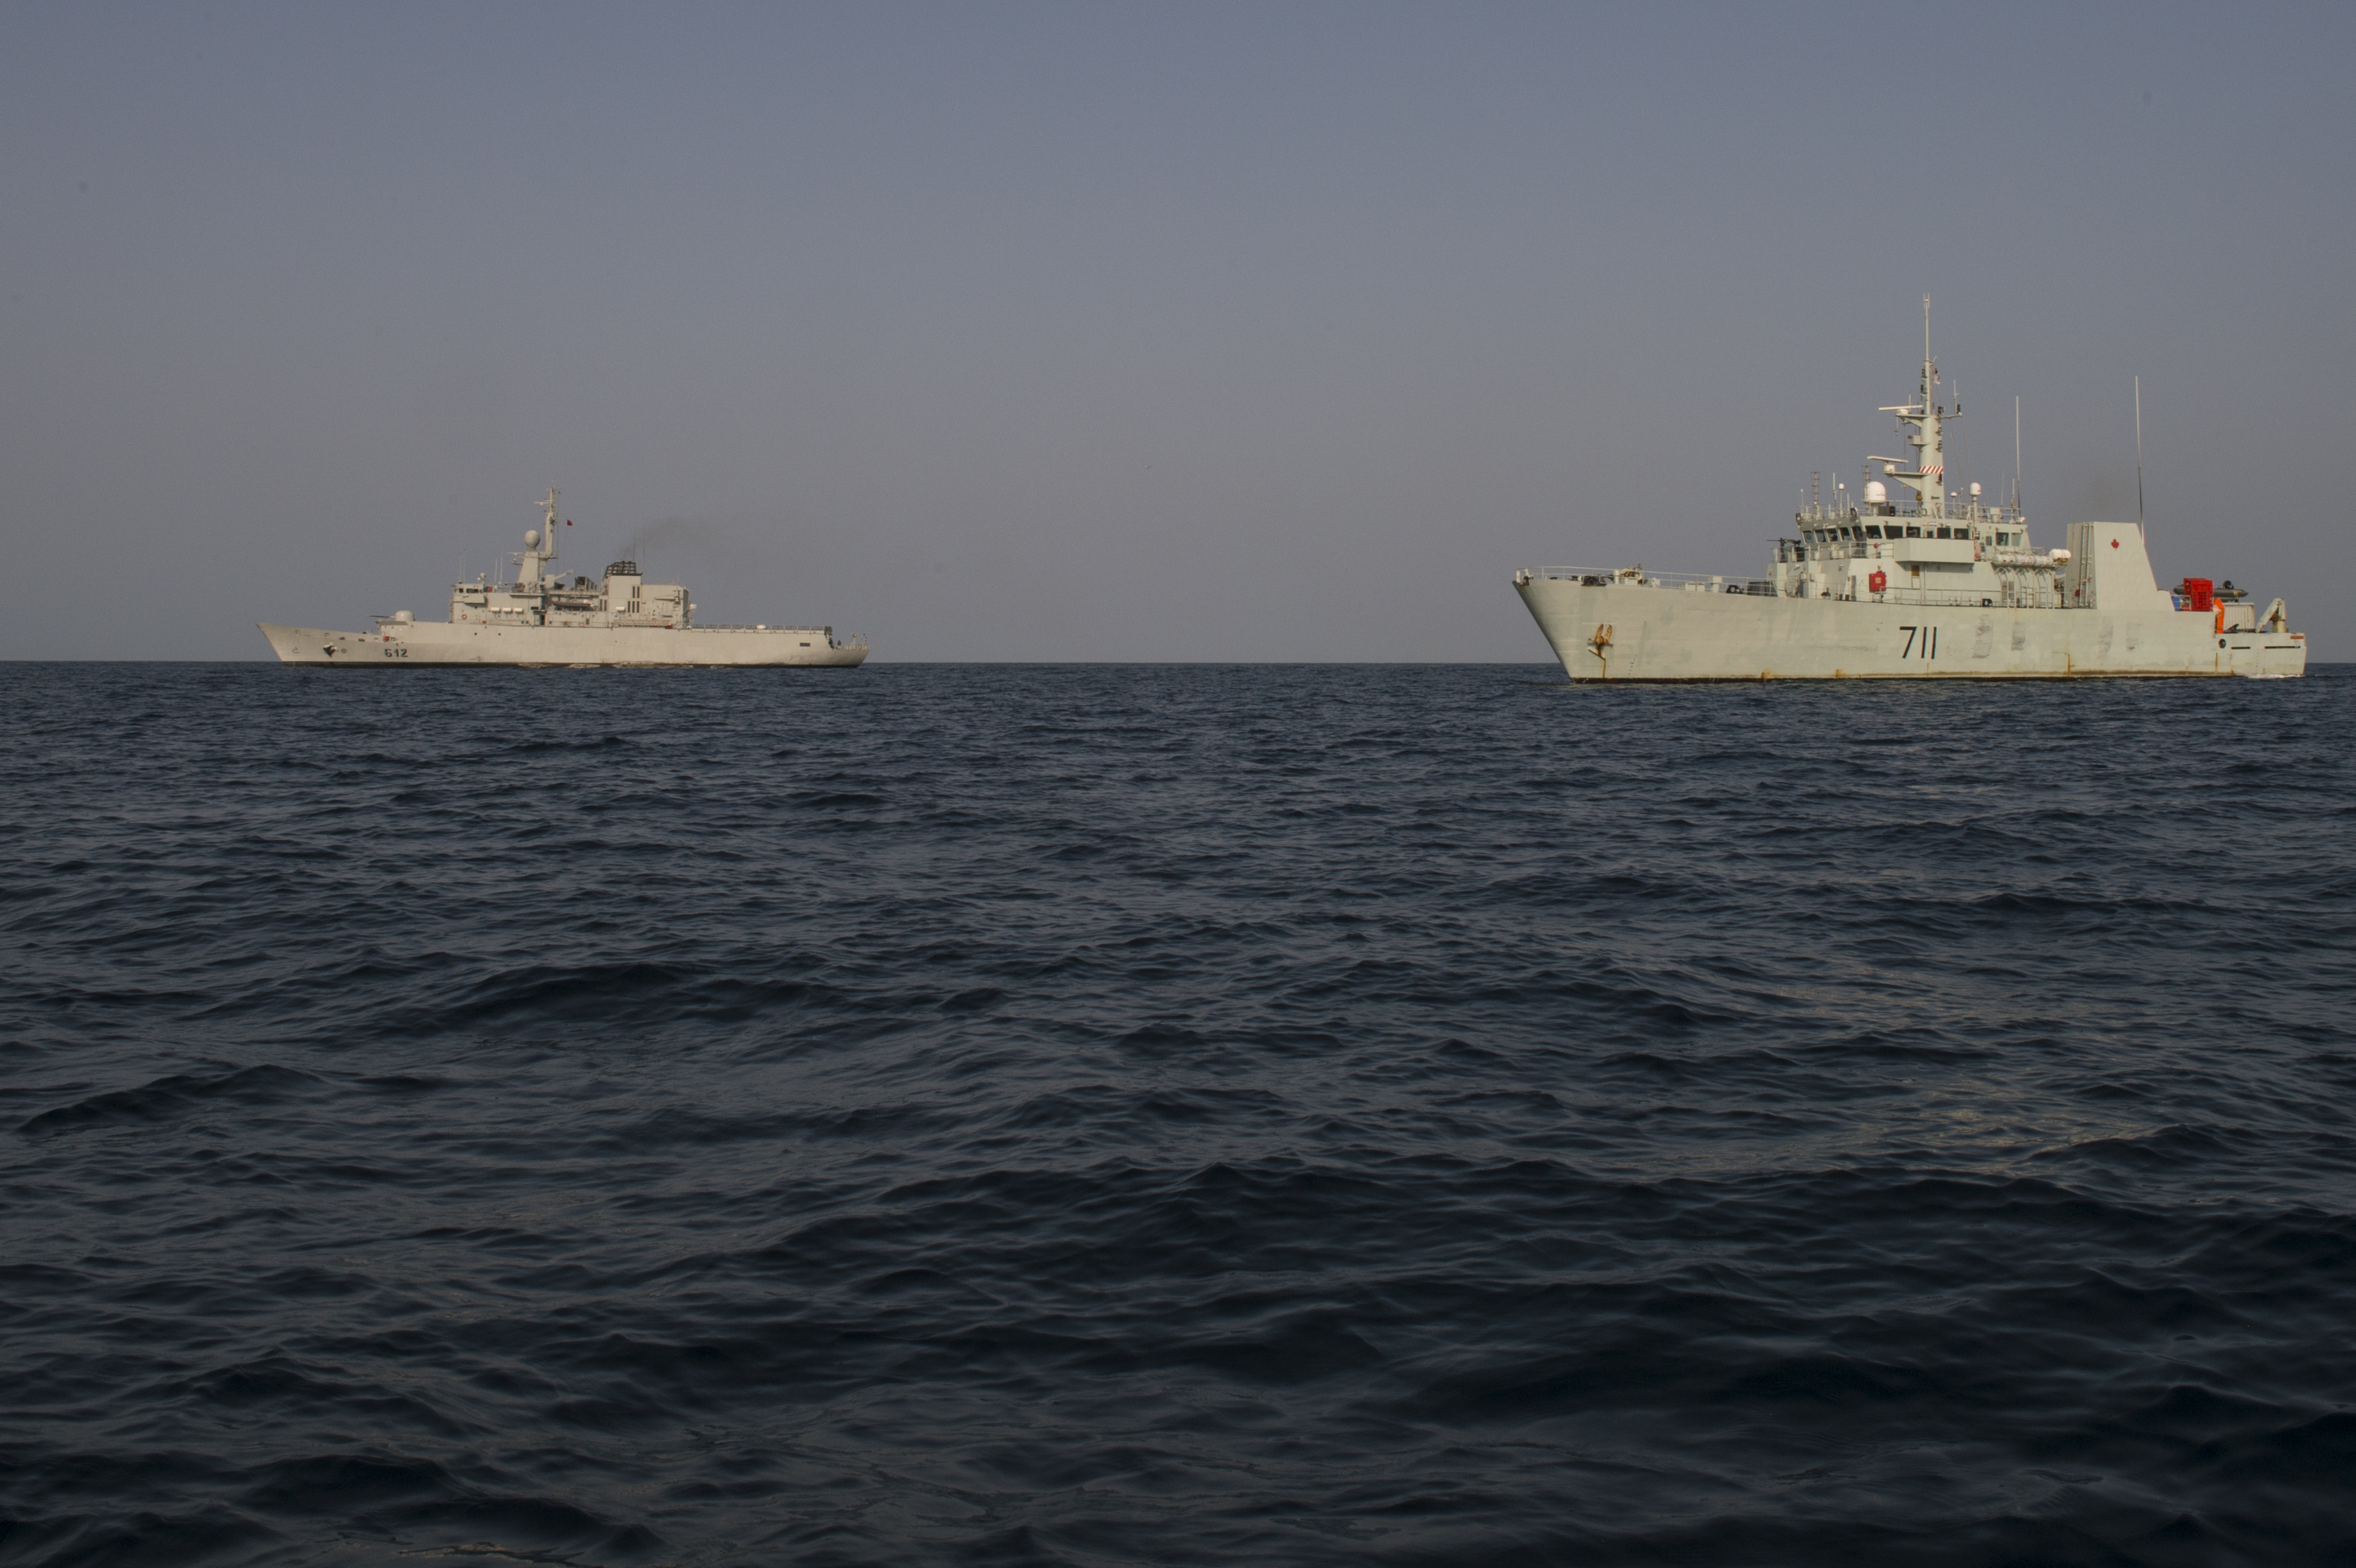 Royal Moroccan Navy Frigate, Hassan II, and HMCS Summerside sail side by side, off the coast of Sierra Leone, during Neptune Trident 17-01, on March 26, 2017.